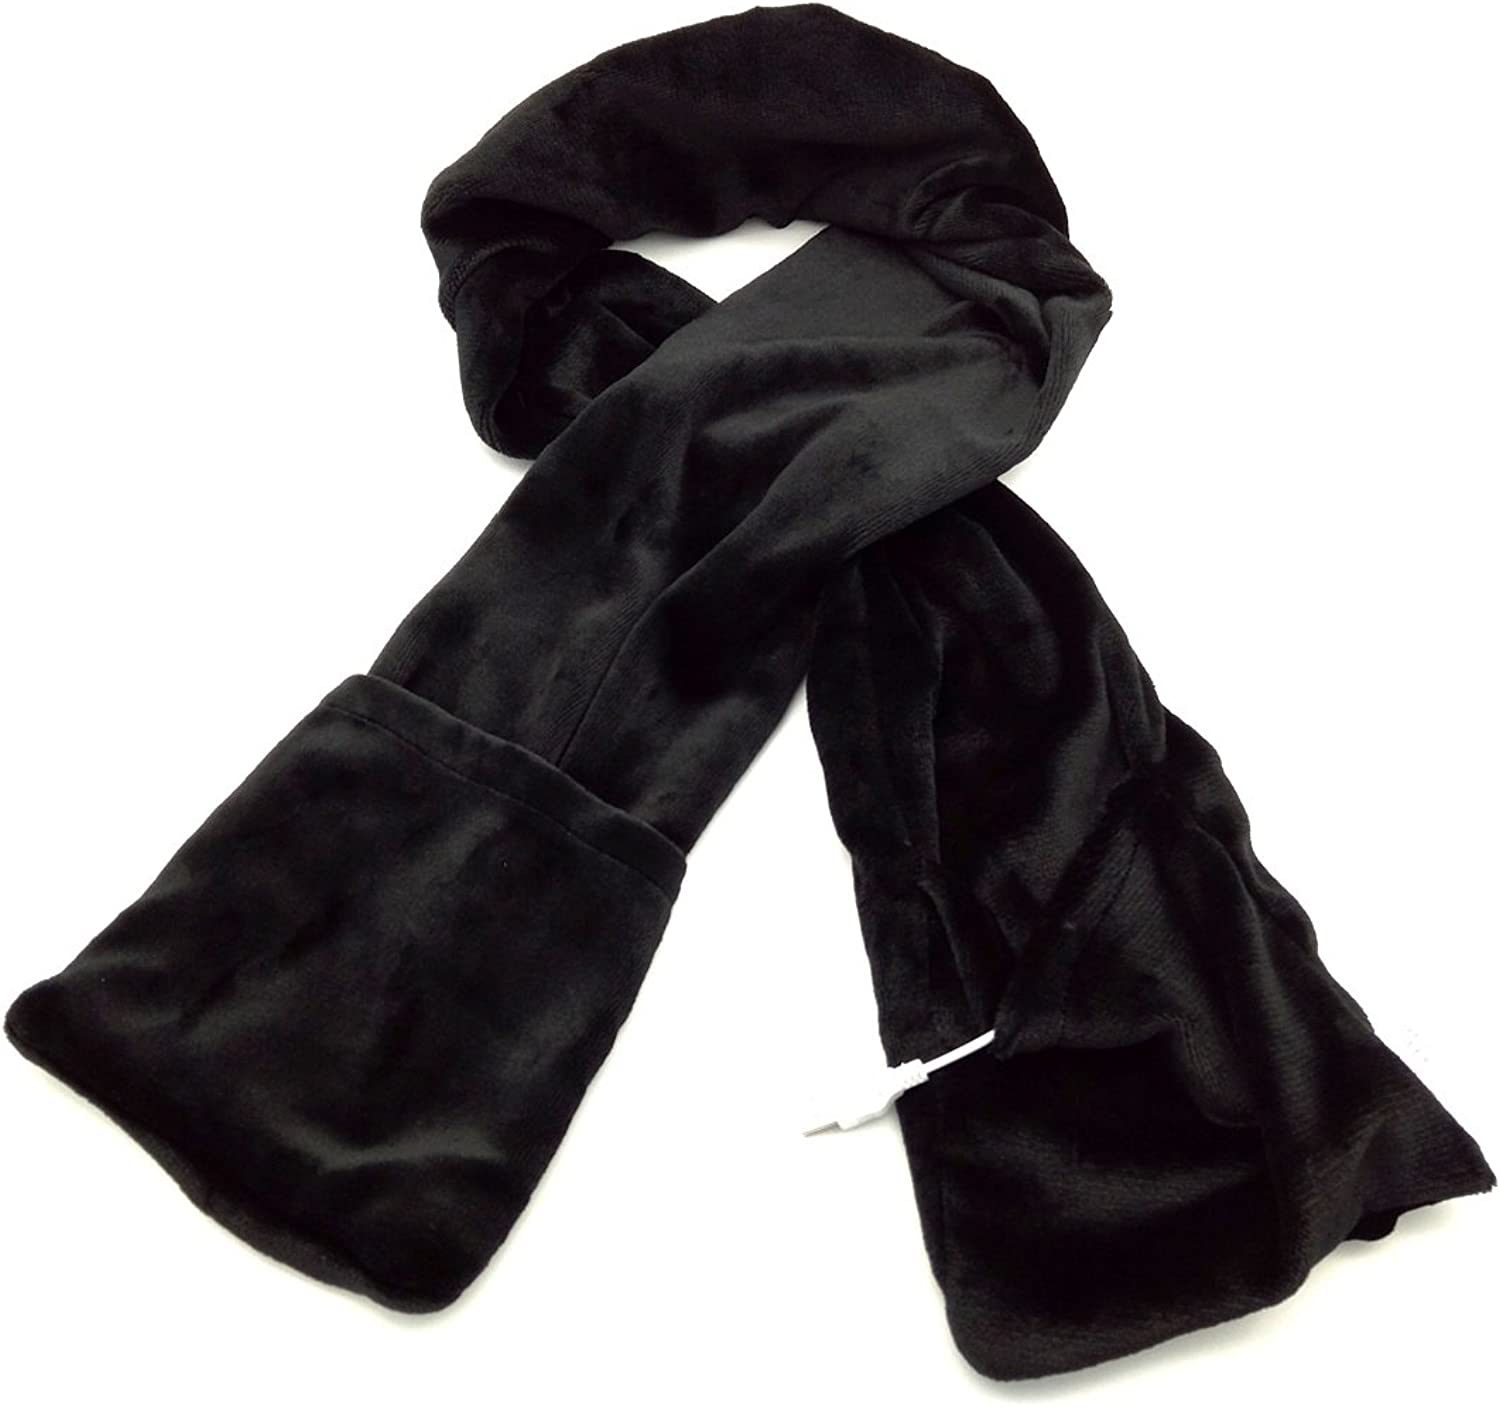 7Buy USB Heating Scarf Heated Neck Shawl Wrap for Winter Outdoor Leisure Sports (Black)